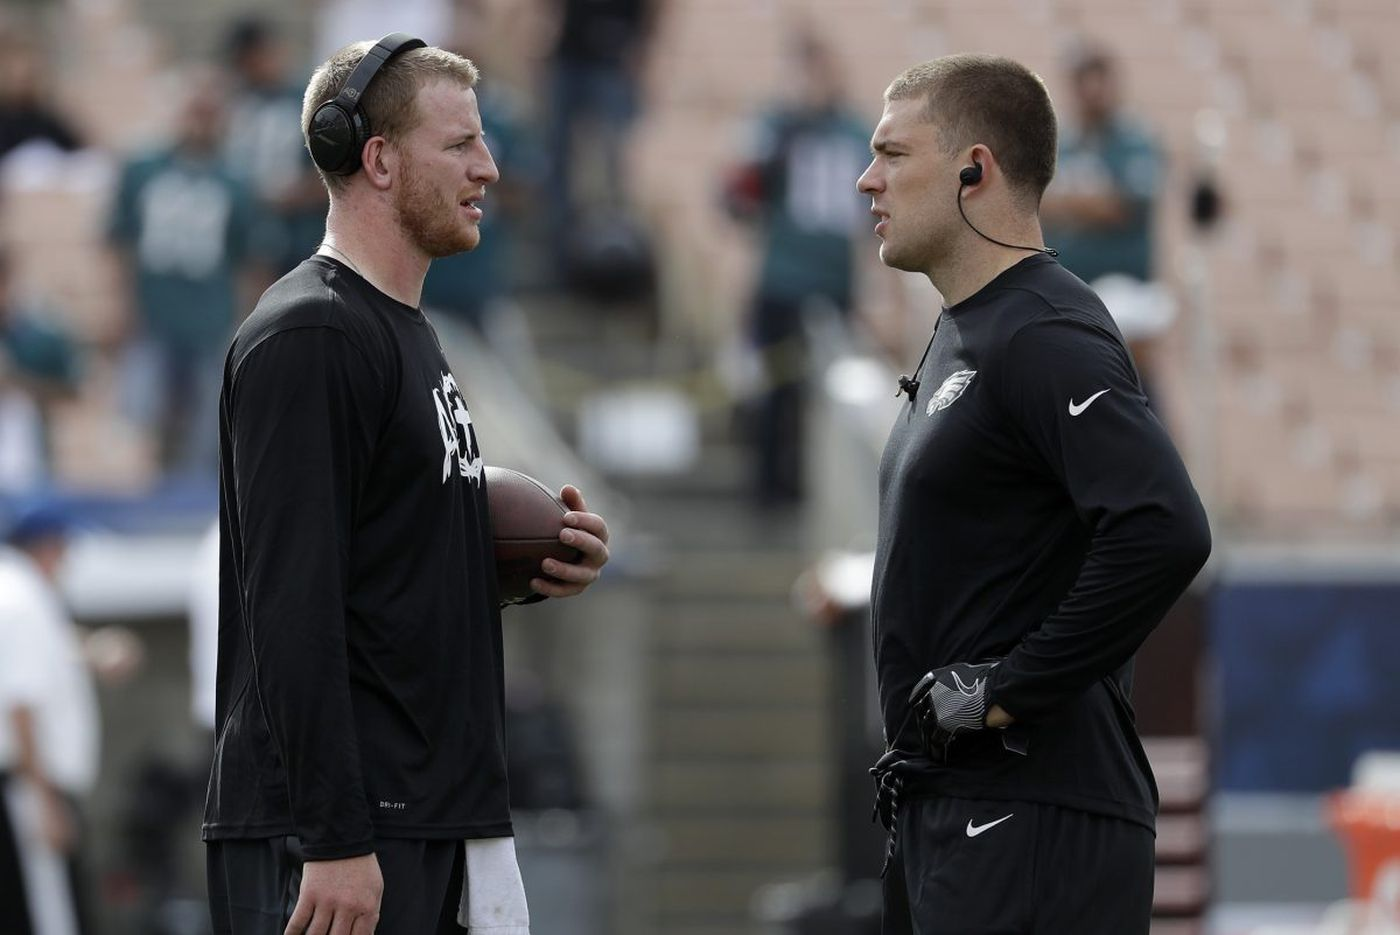 Eagles-Rams inactives: Zach Ertz, Joe Walker out